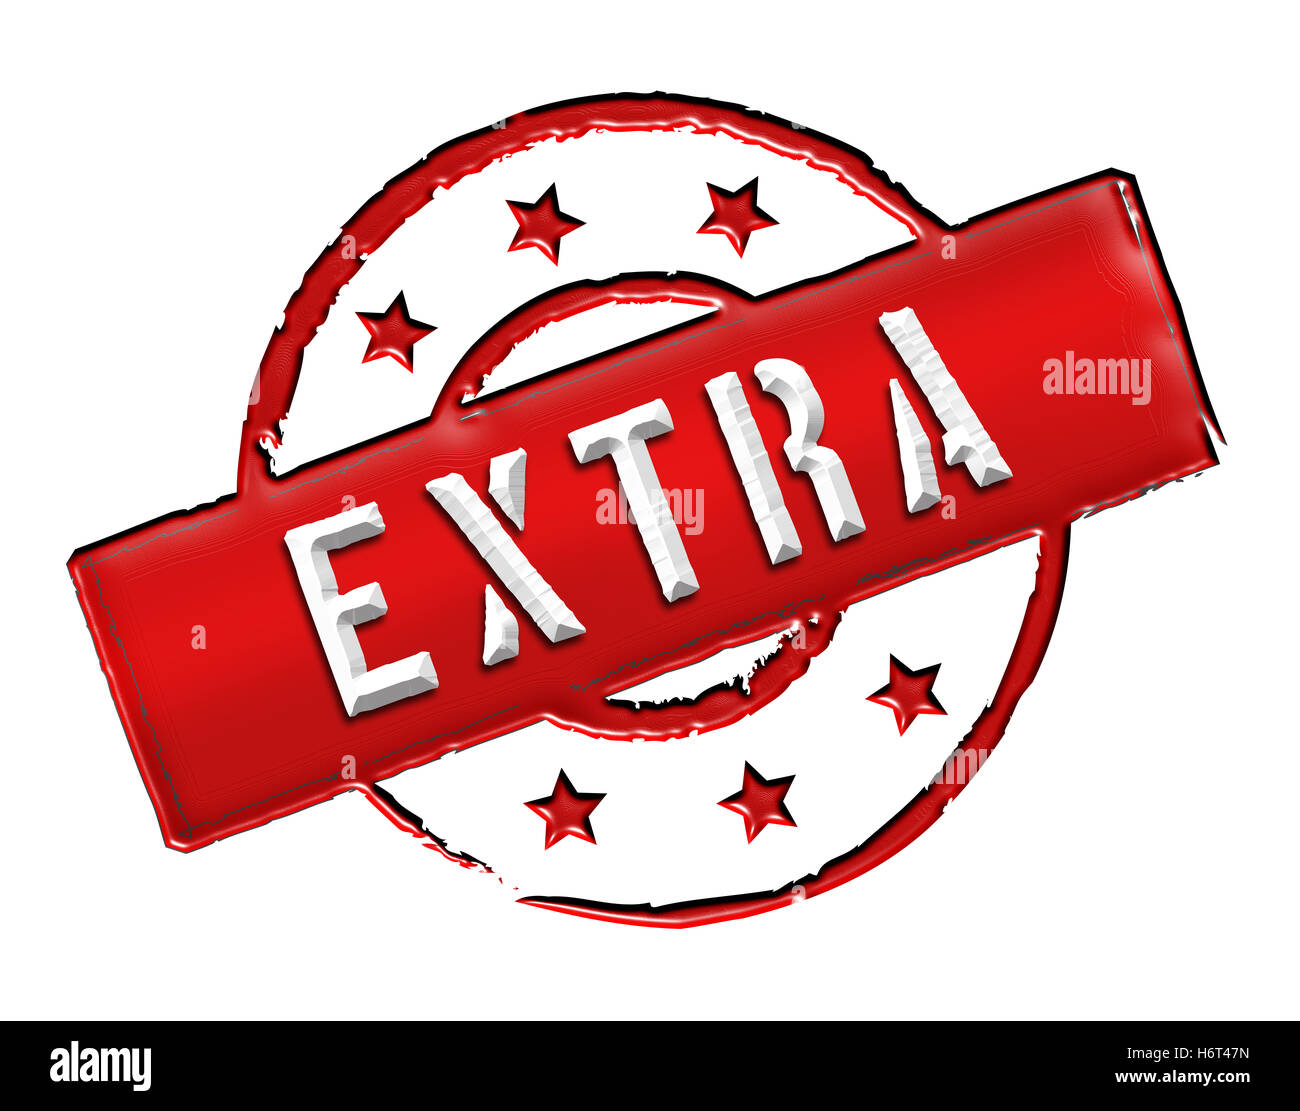 banner pictogram symbol pictograph trade symbol apart extra insulated isolated caution important banner abstract - Stock Image